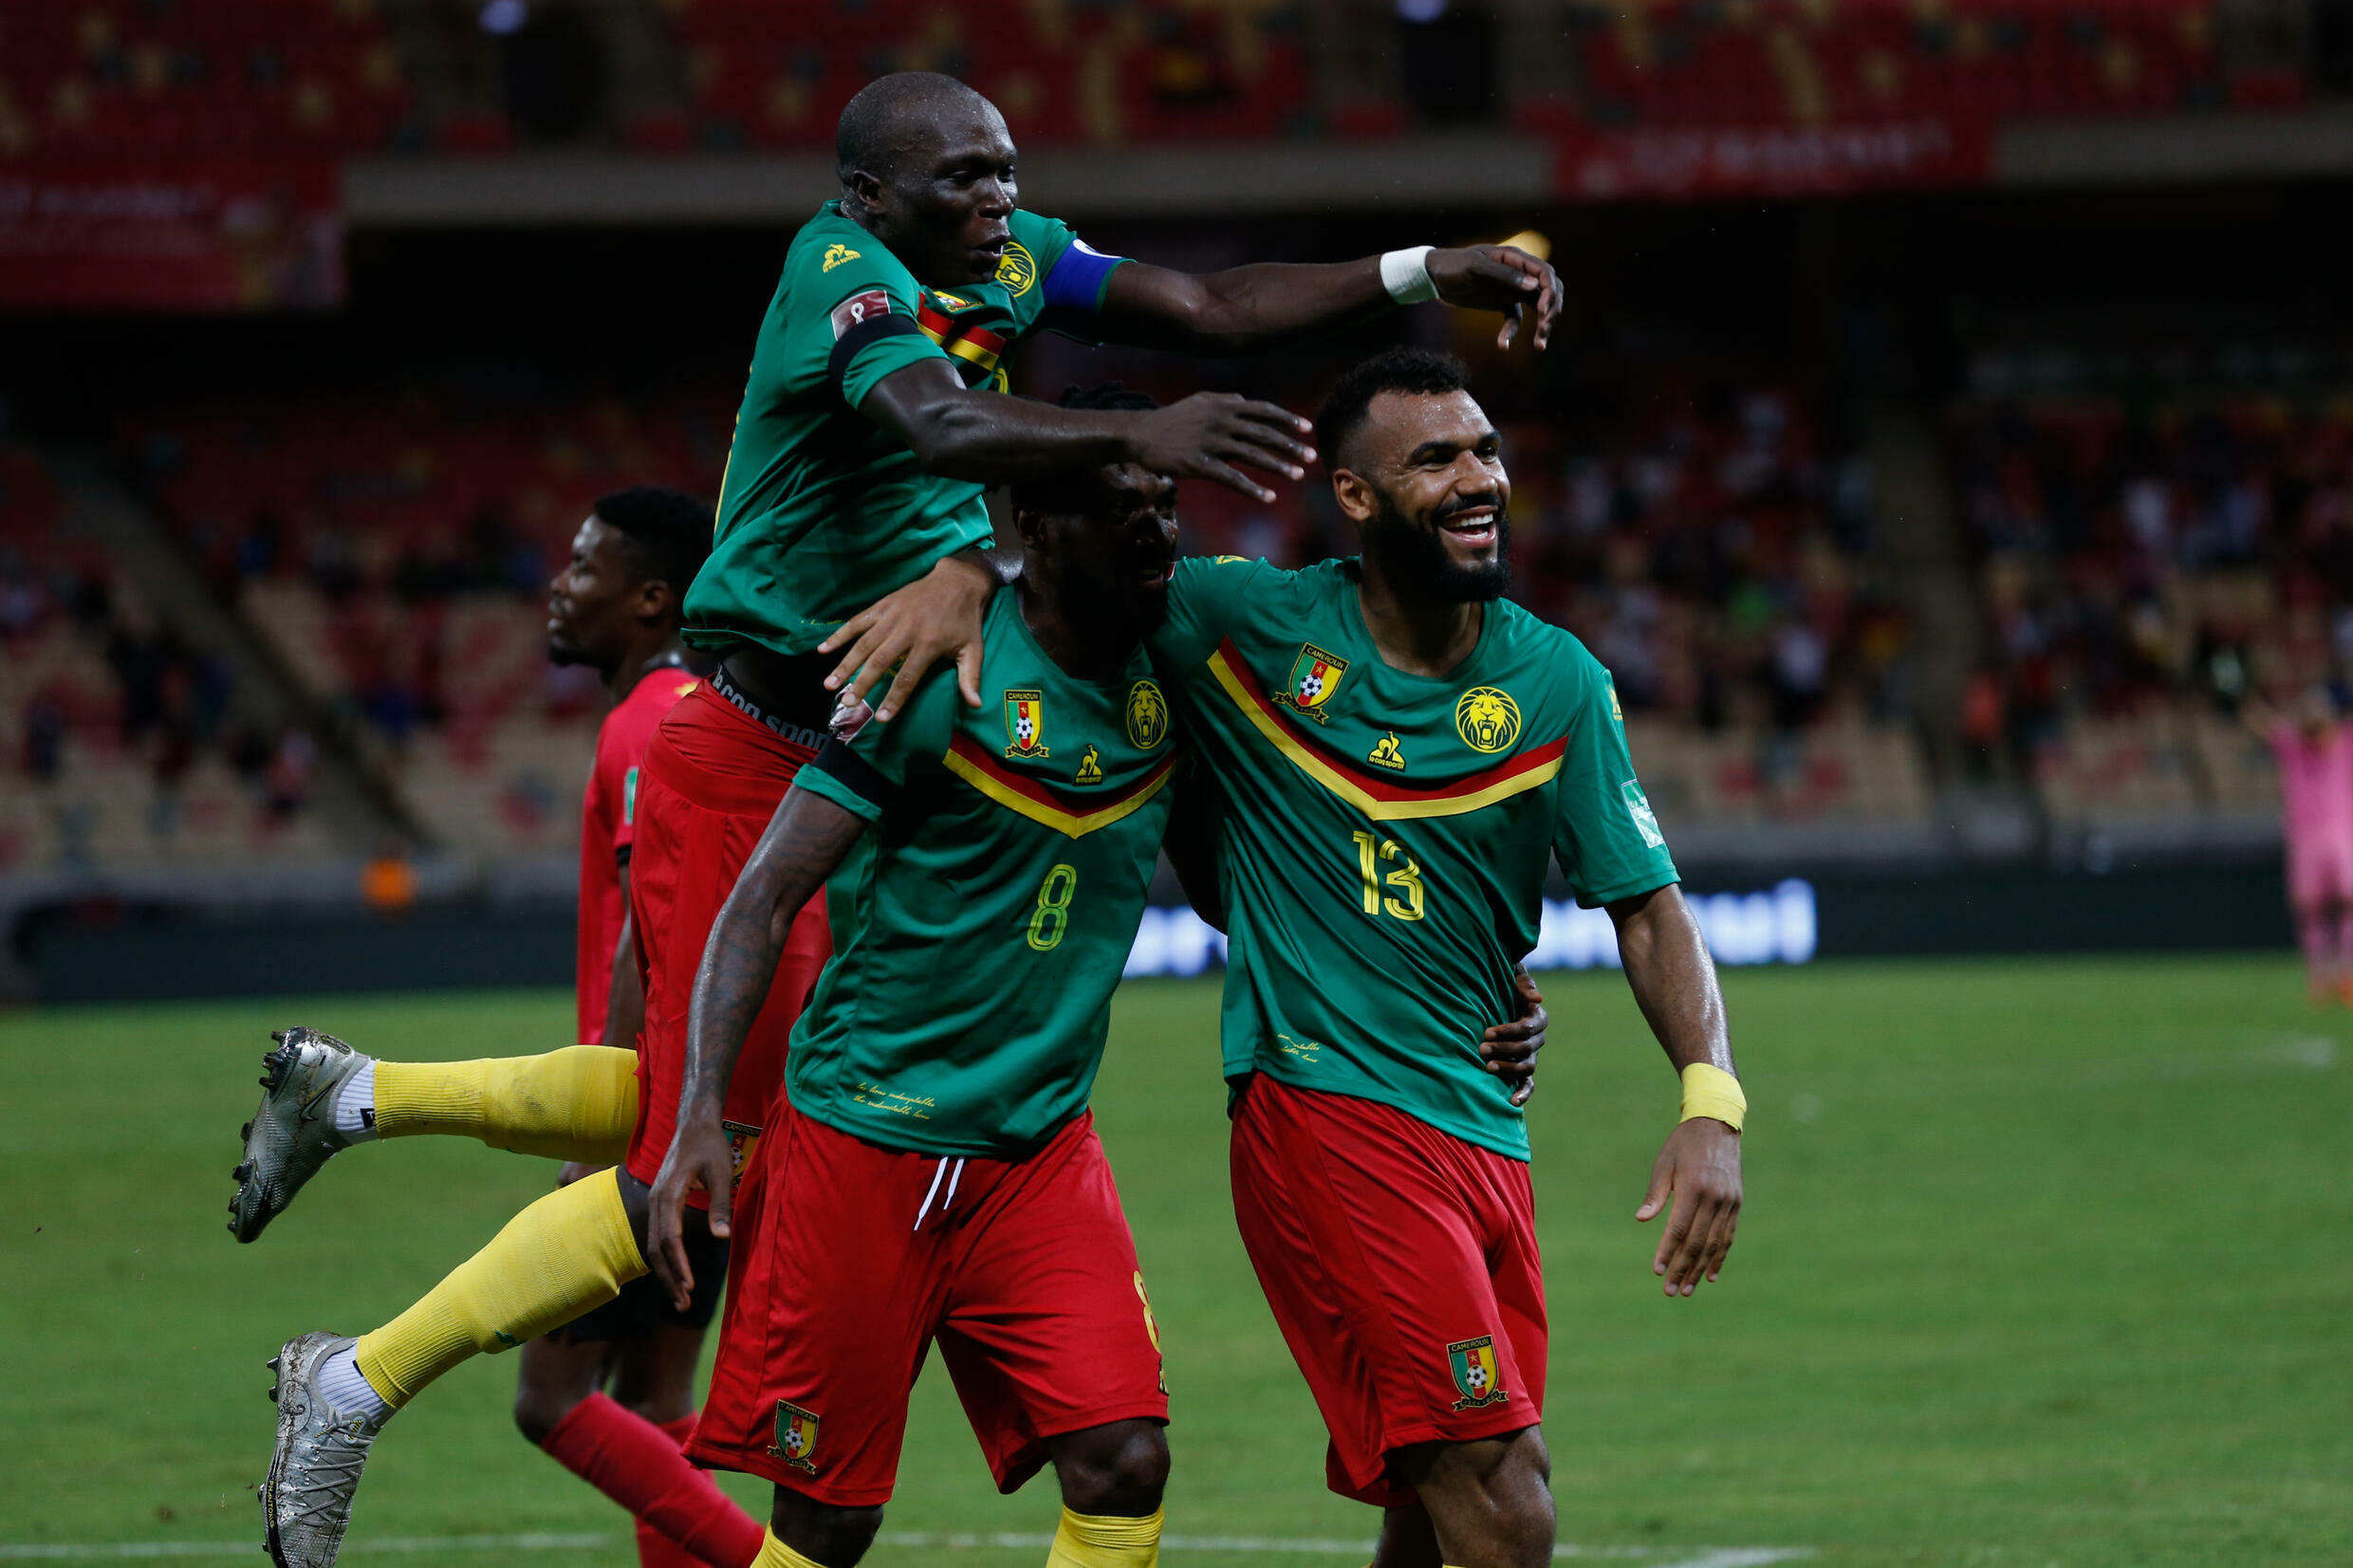 Eric Maxim Choupo-Moting (R) of Cameroon celebrates scoring against Mozambique in a World Cup qualifier in Douala on Friday.